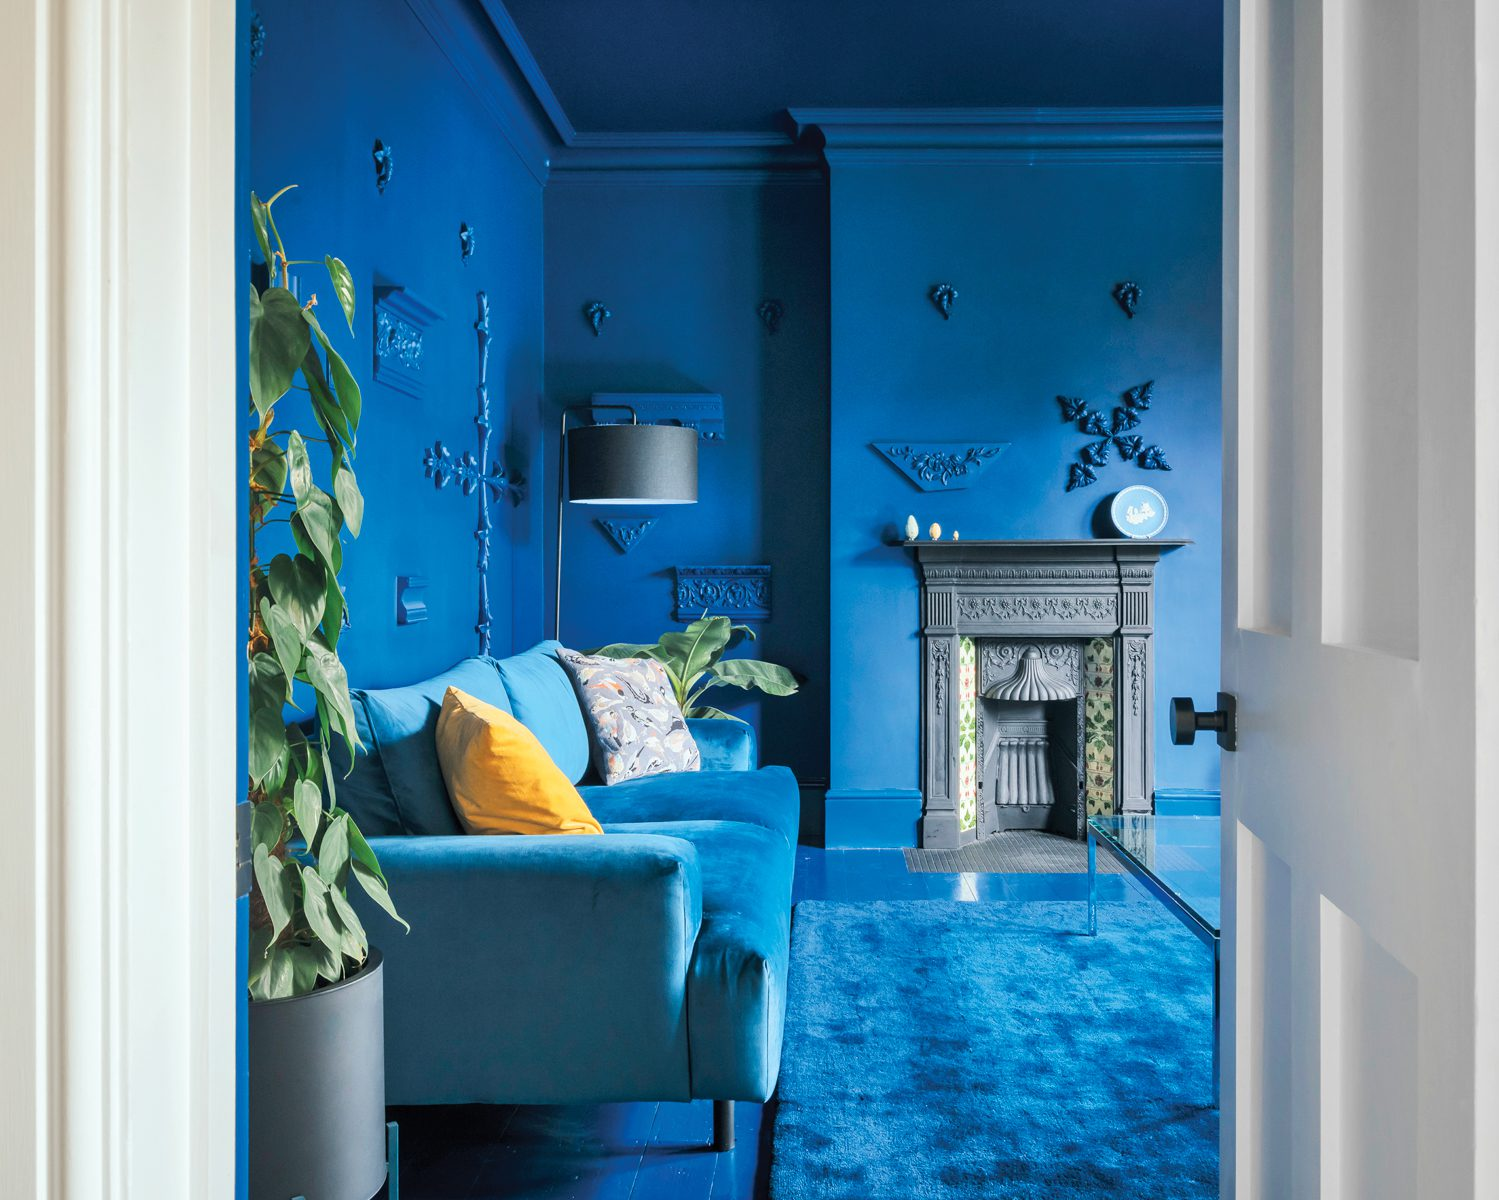 Dulux's Marine Waters emulsion covers the lounge walls—applied plaster architecture fragments and all.